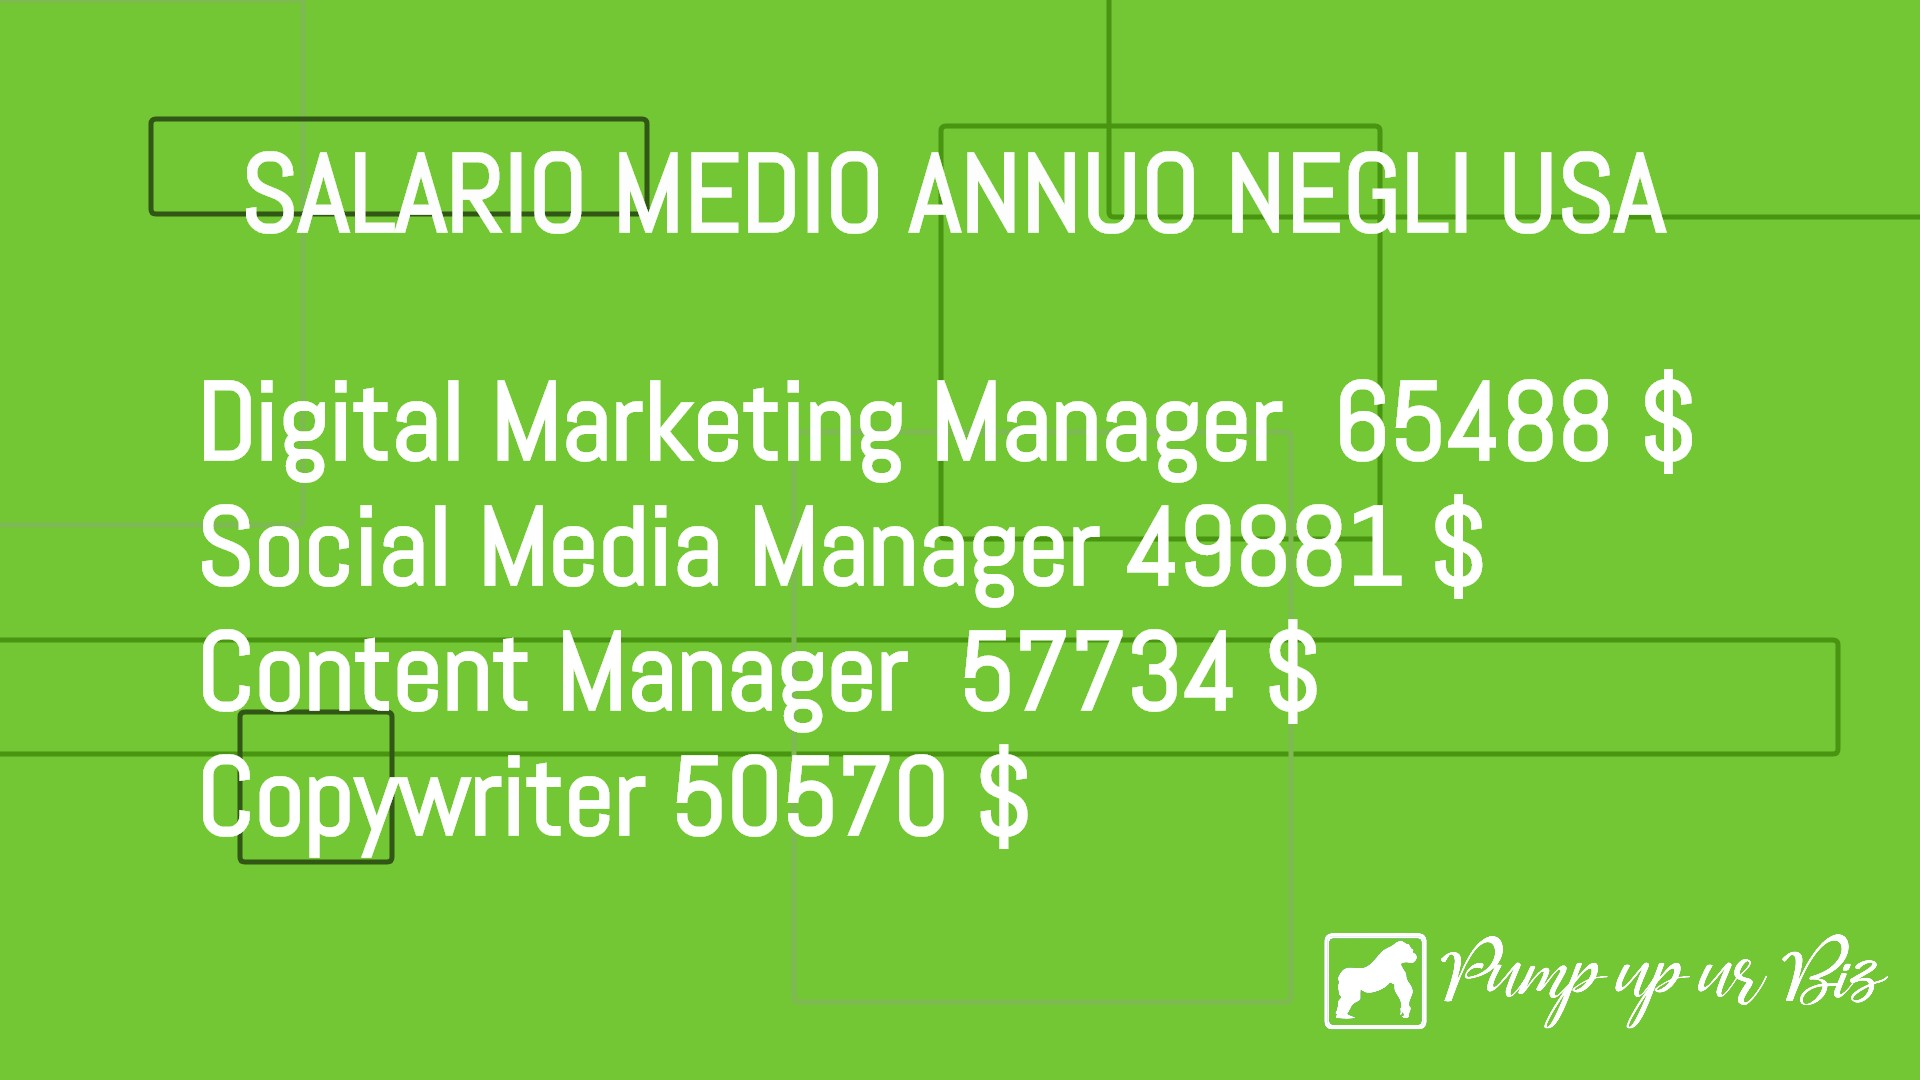 Il salario medio annuo per le figure impiegate nel digital marketing.